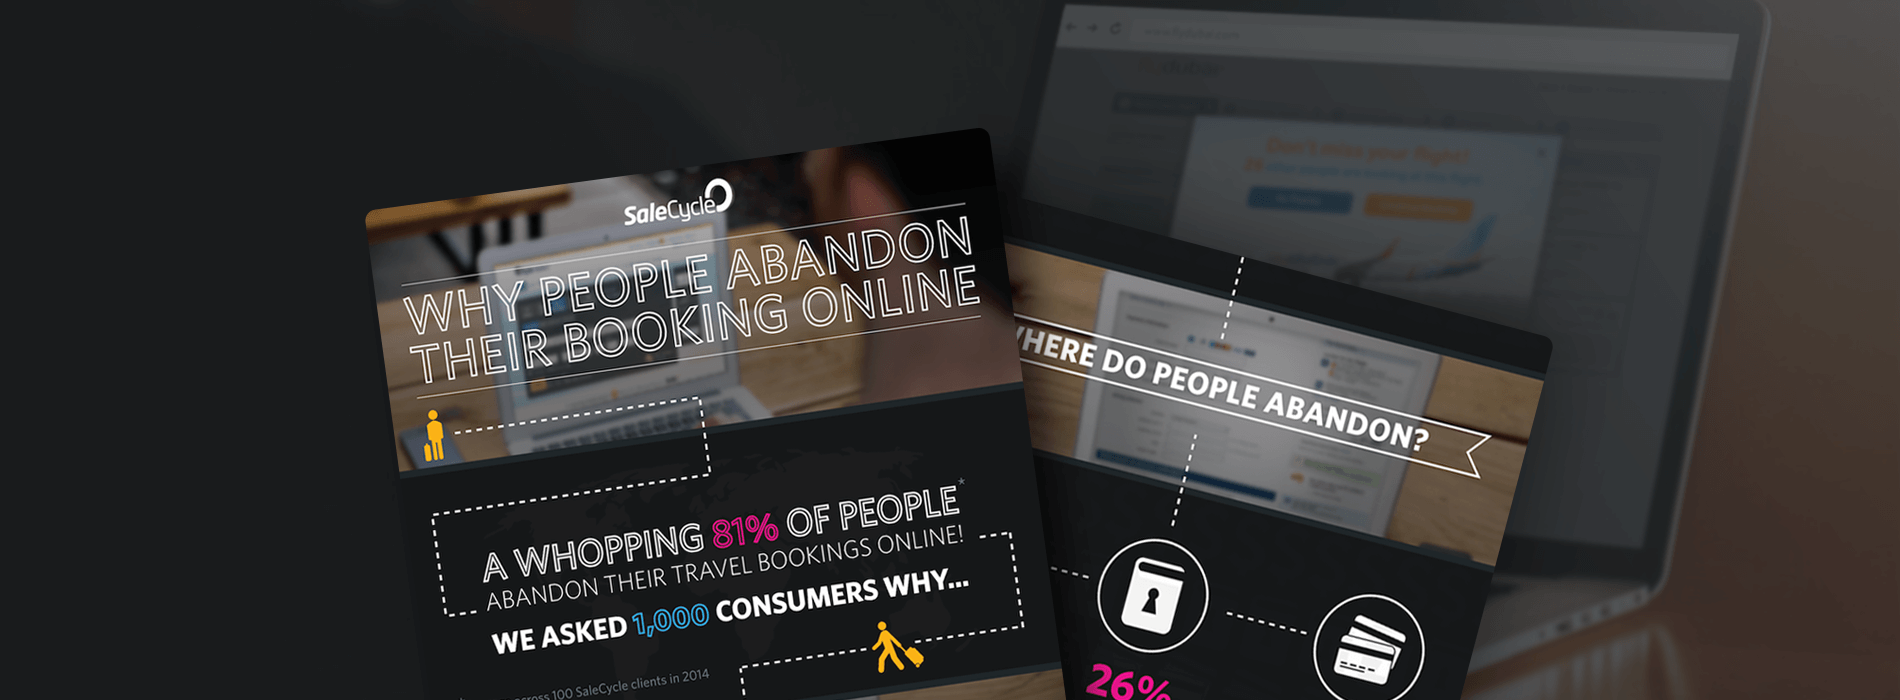 [Infographic] Booking Abandonment – Why People Abandon Their Booking